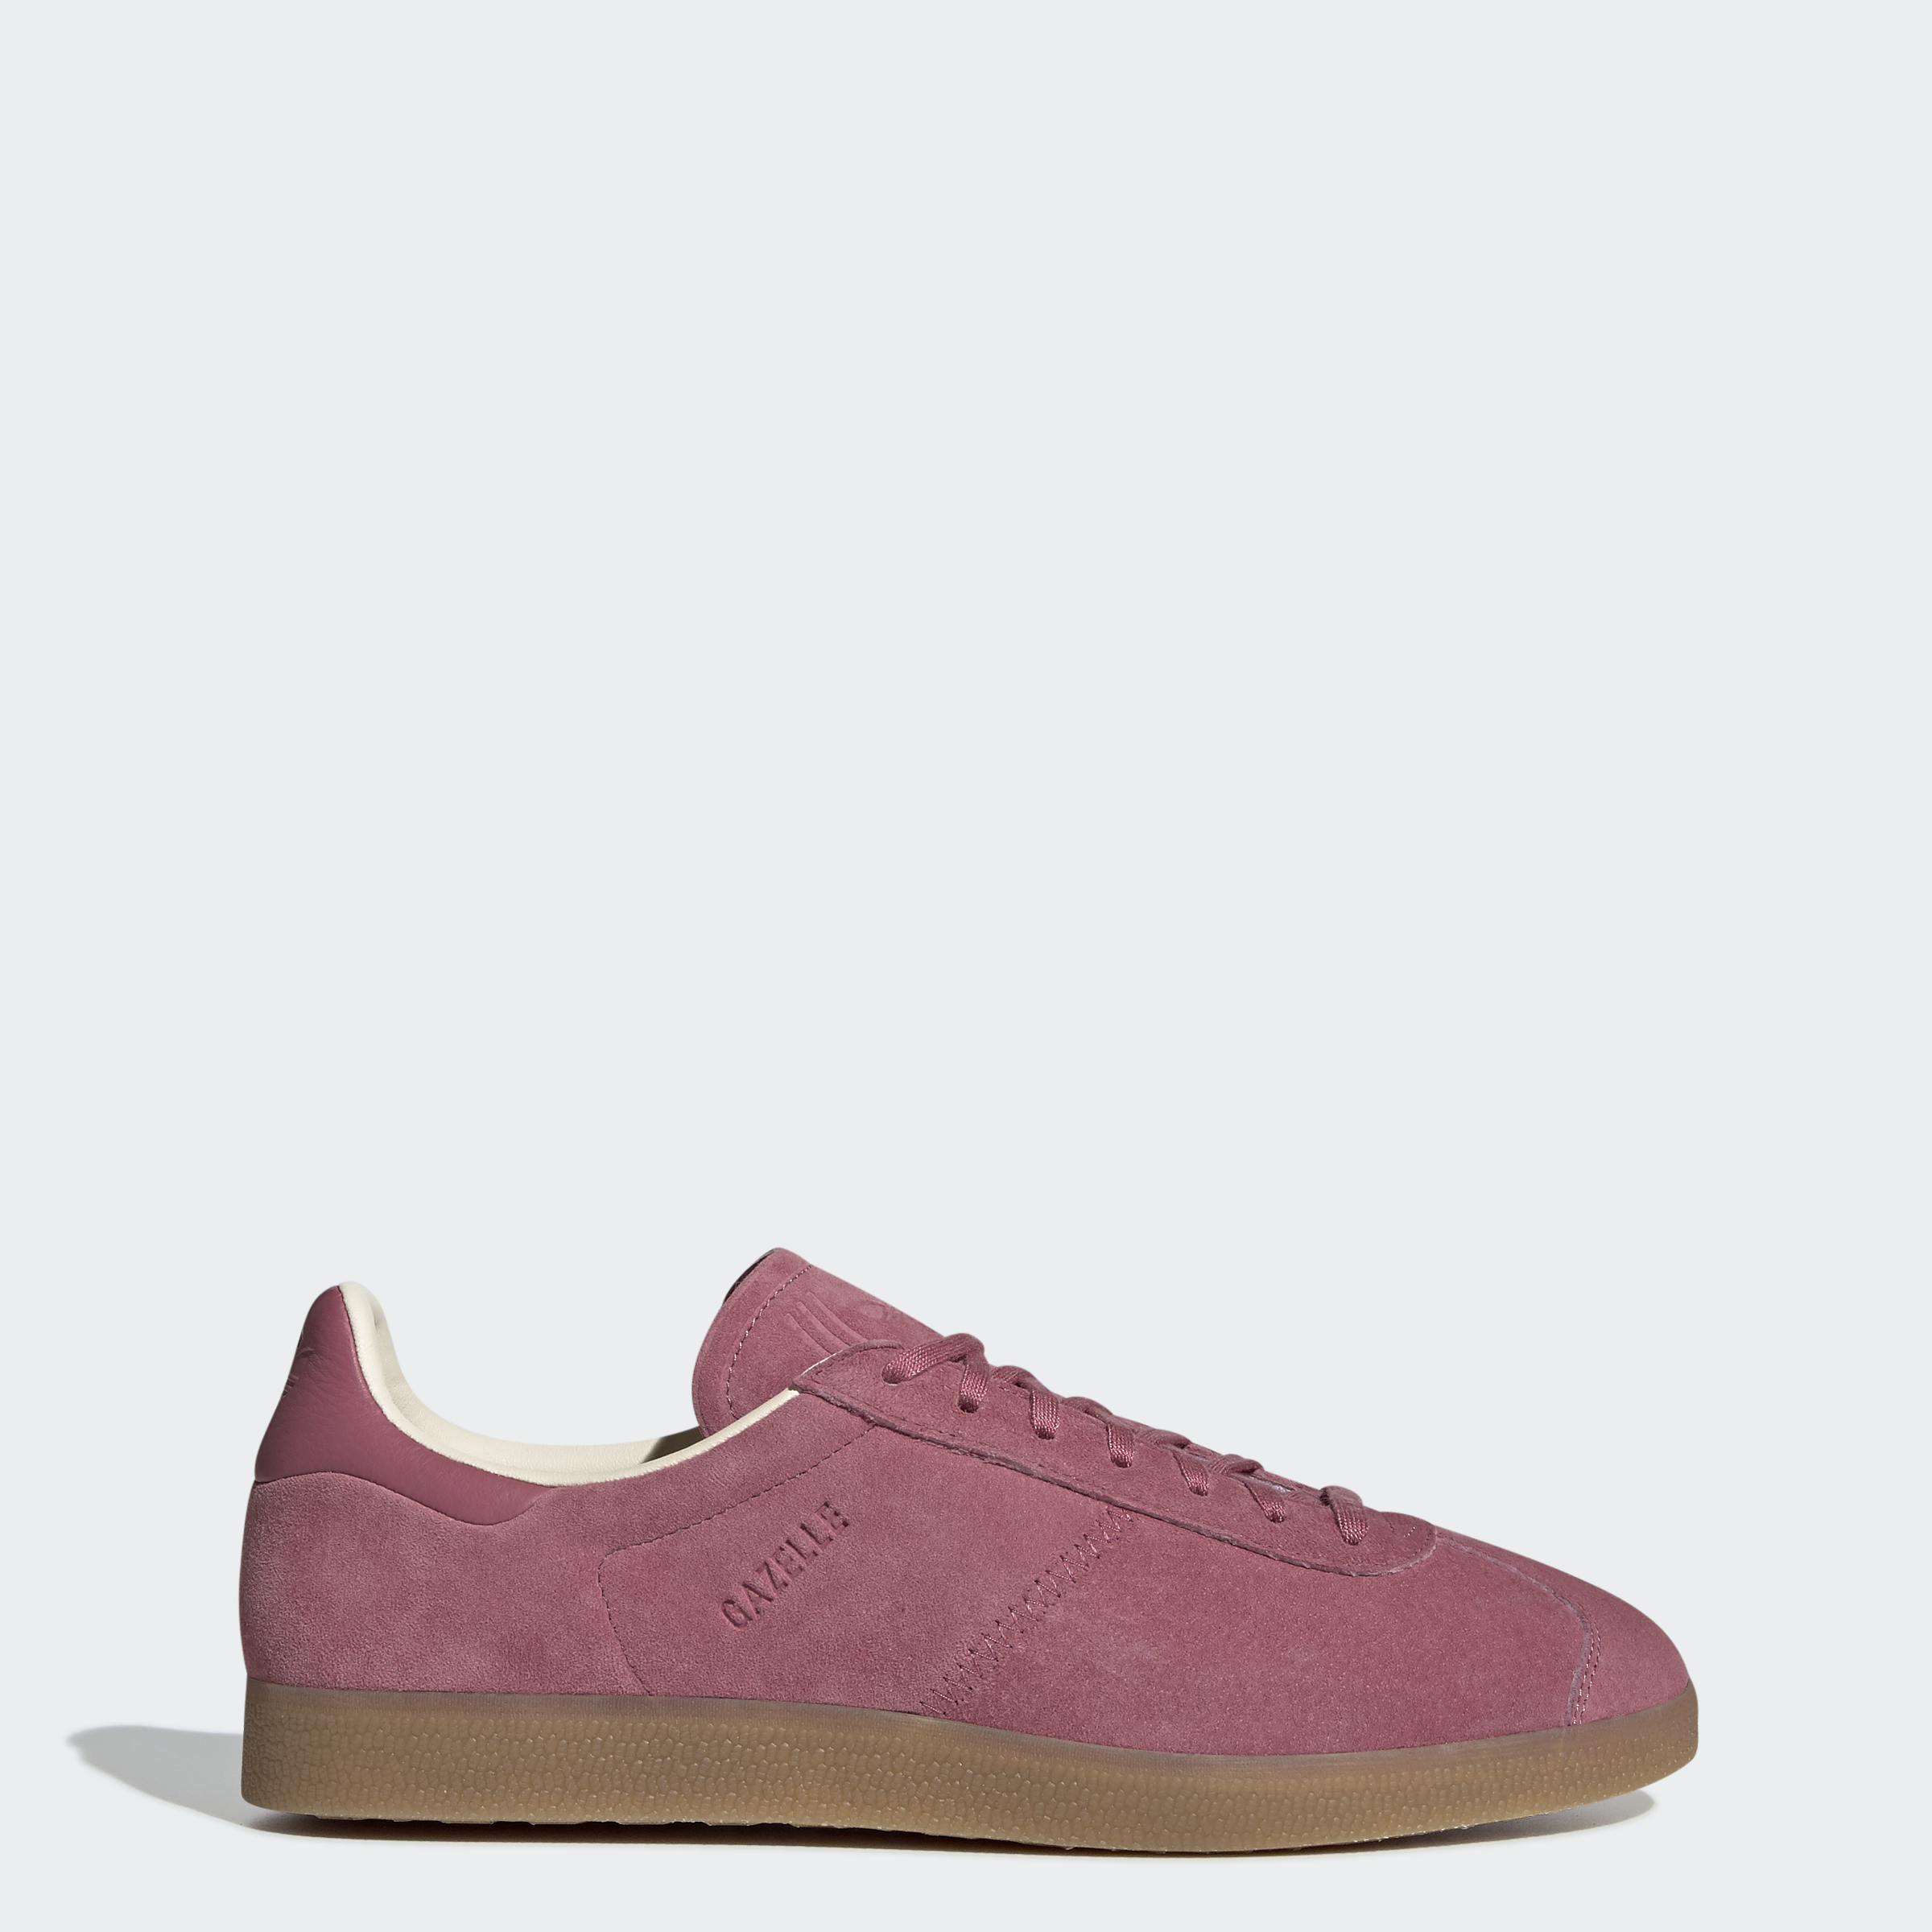 adidas-Originals-Gazelle-Shoes-Men-039-s thumbnail 19